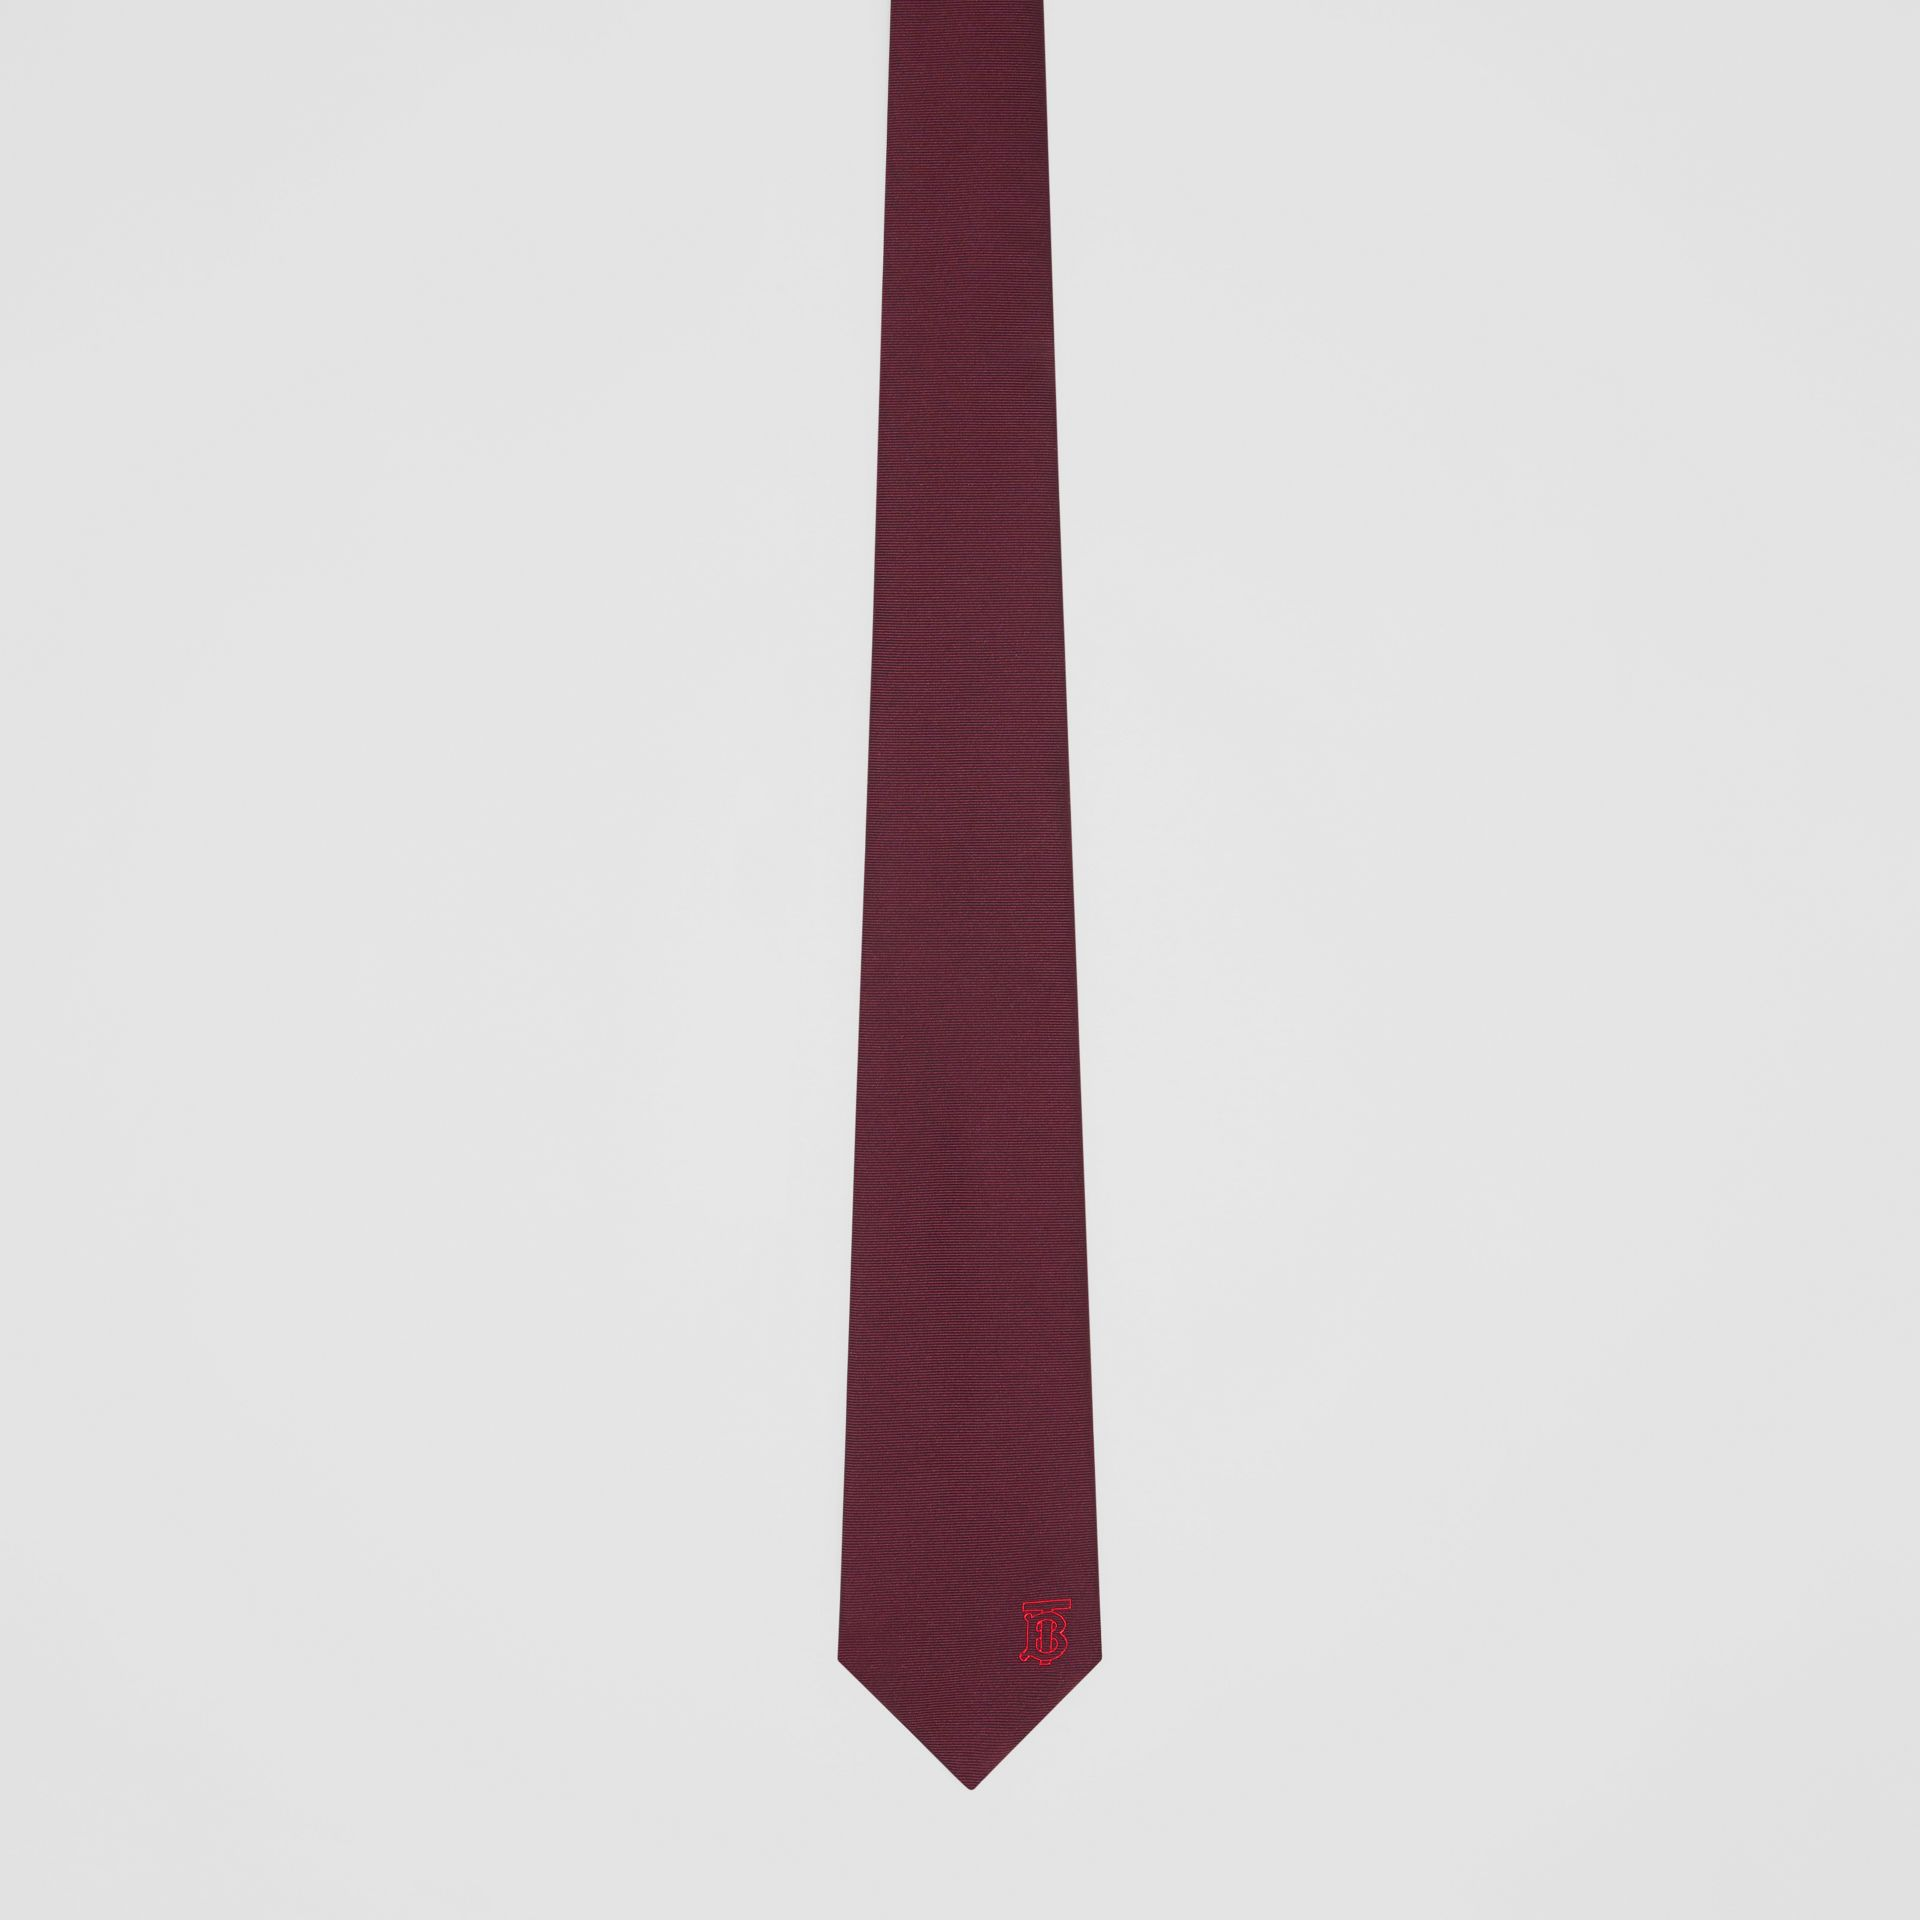 Classic Cut Monogram Motif Silk Tie in Deep Claret - Men | Burberry United Kingdom - gallery image 3